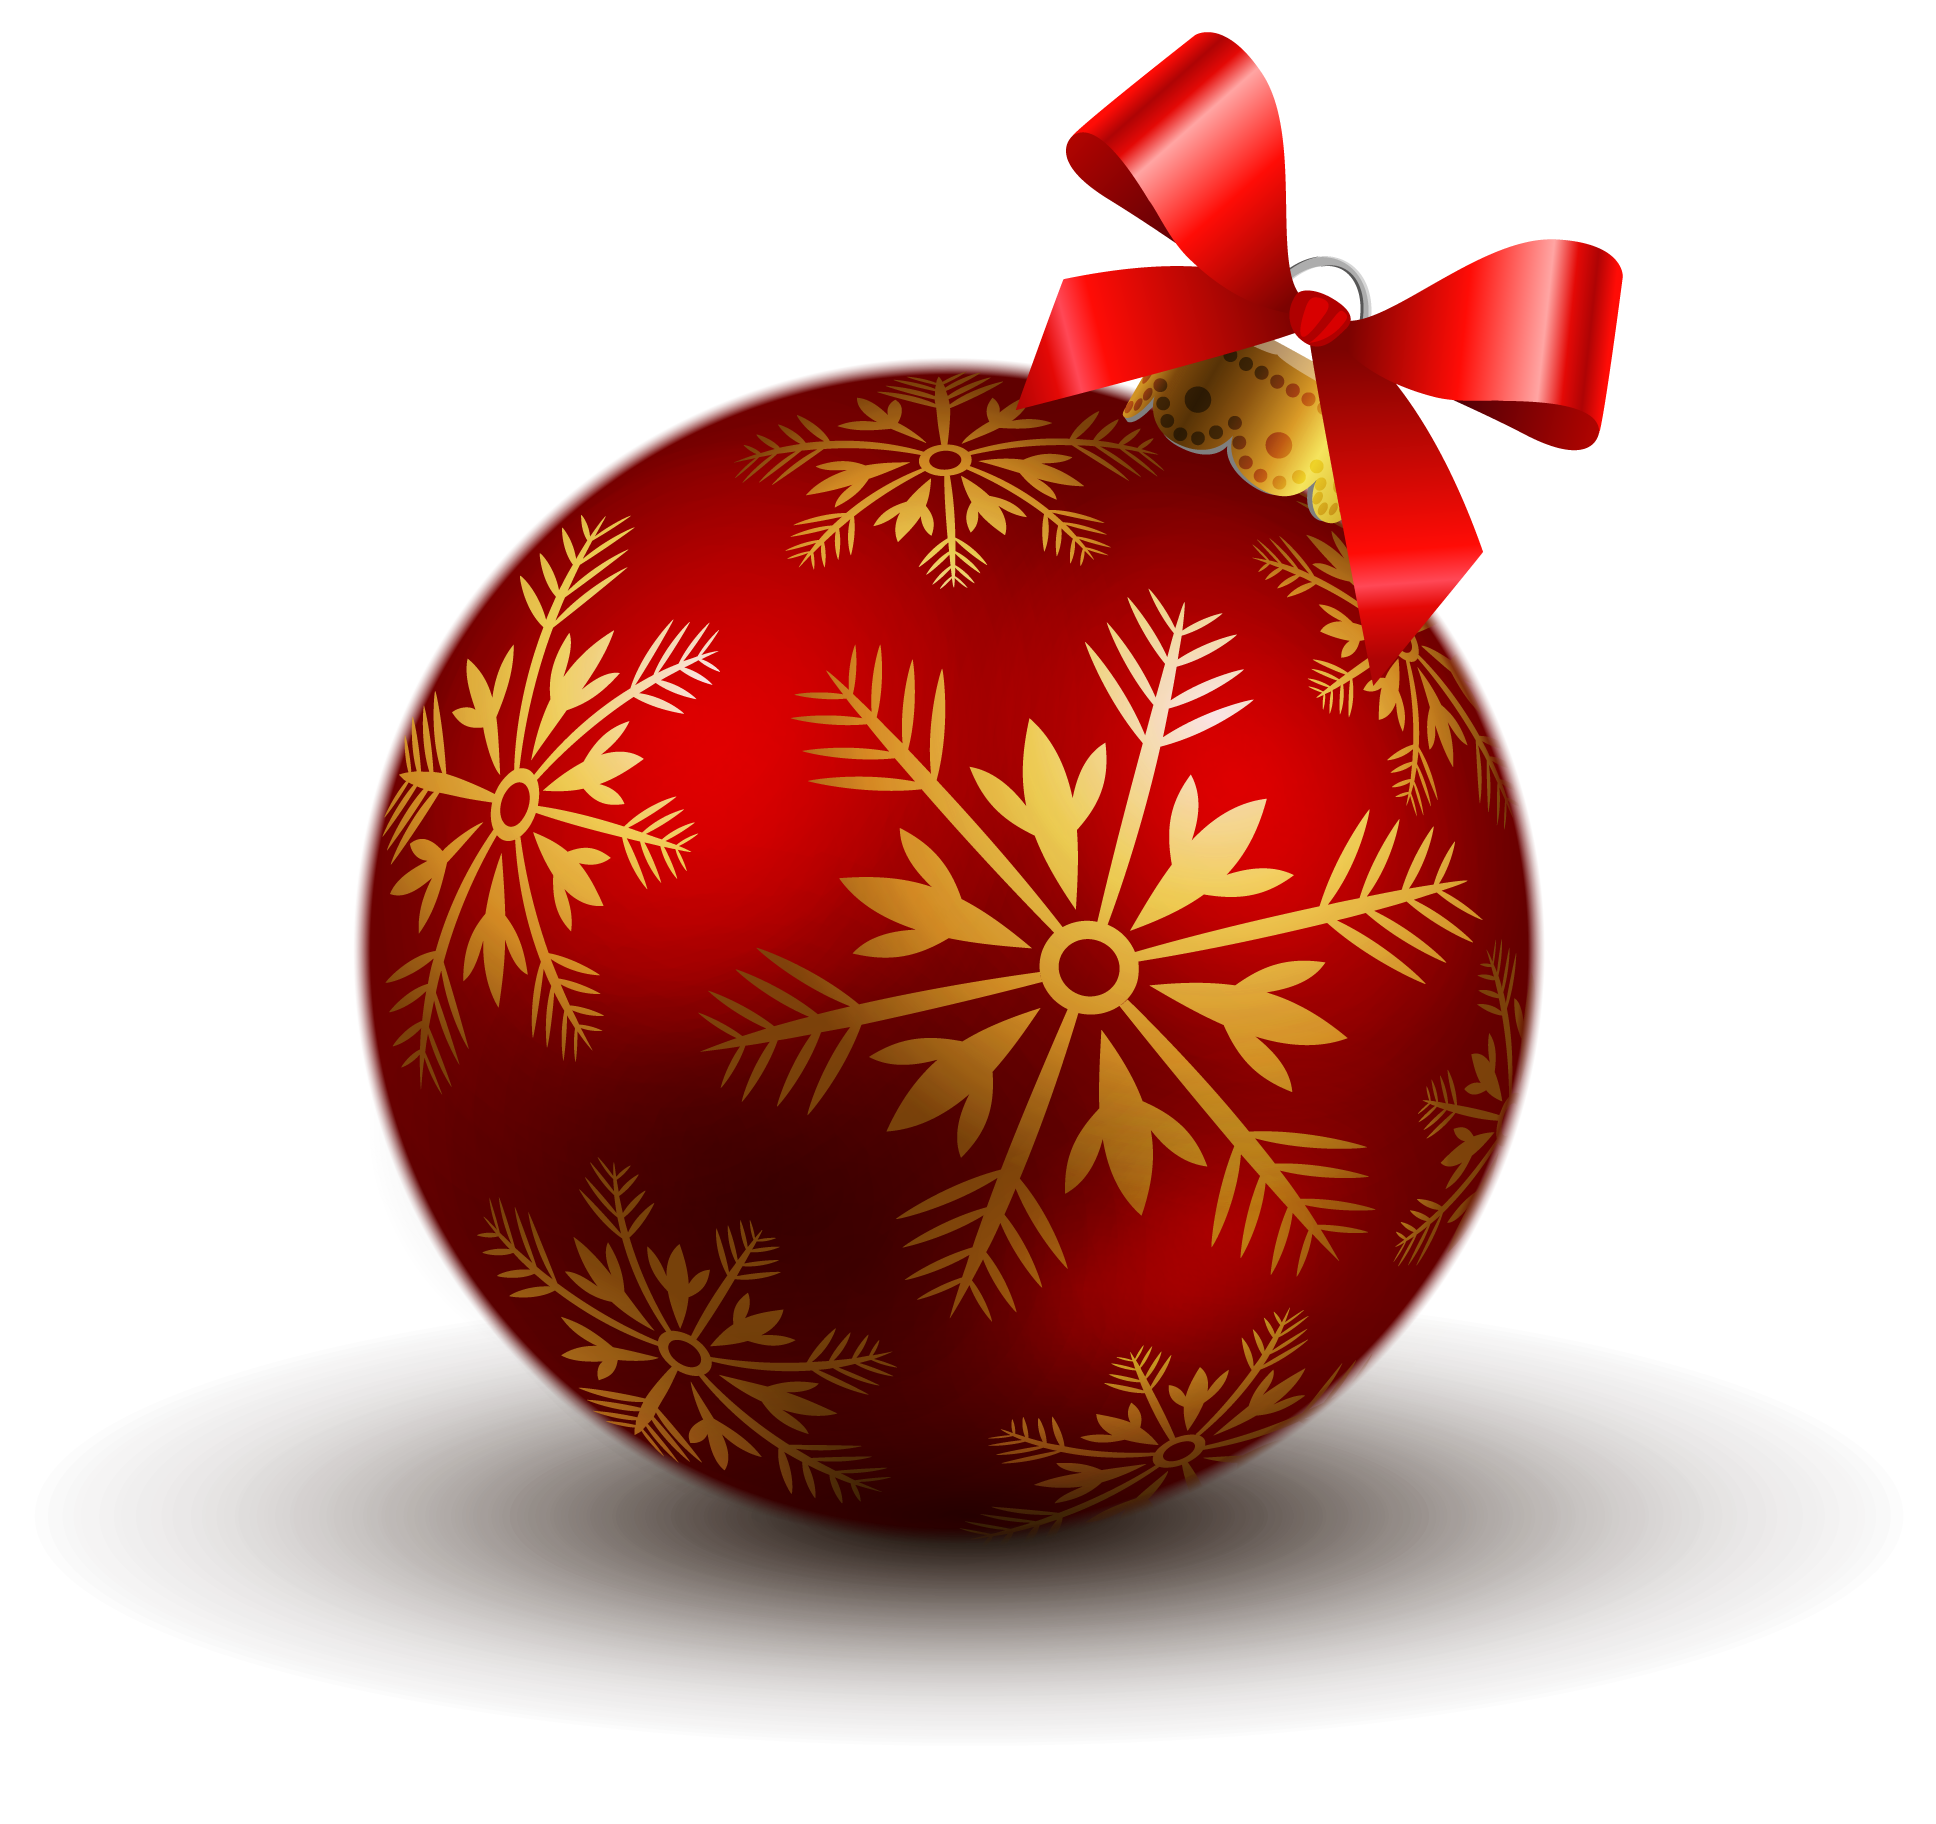 Free Icons Png Red Christmas Balls